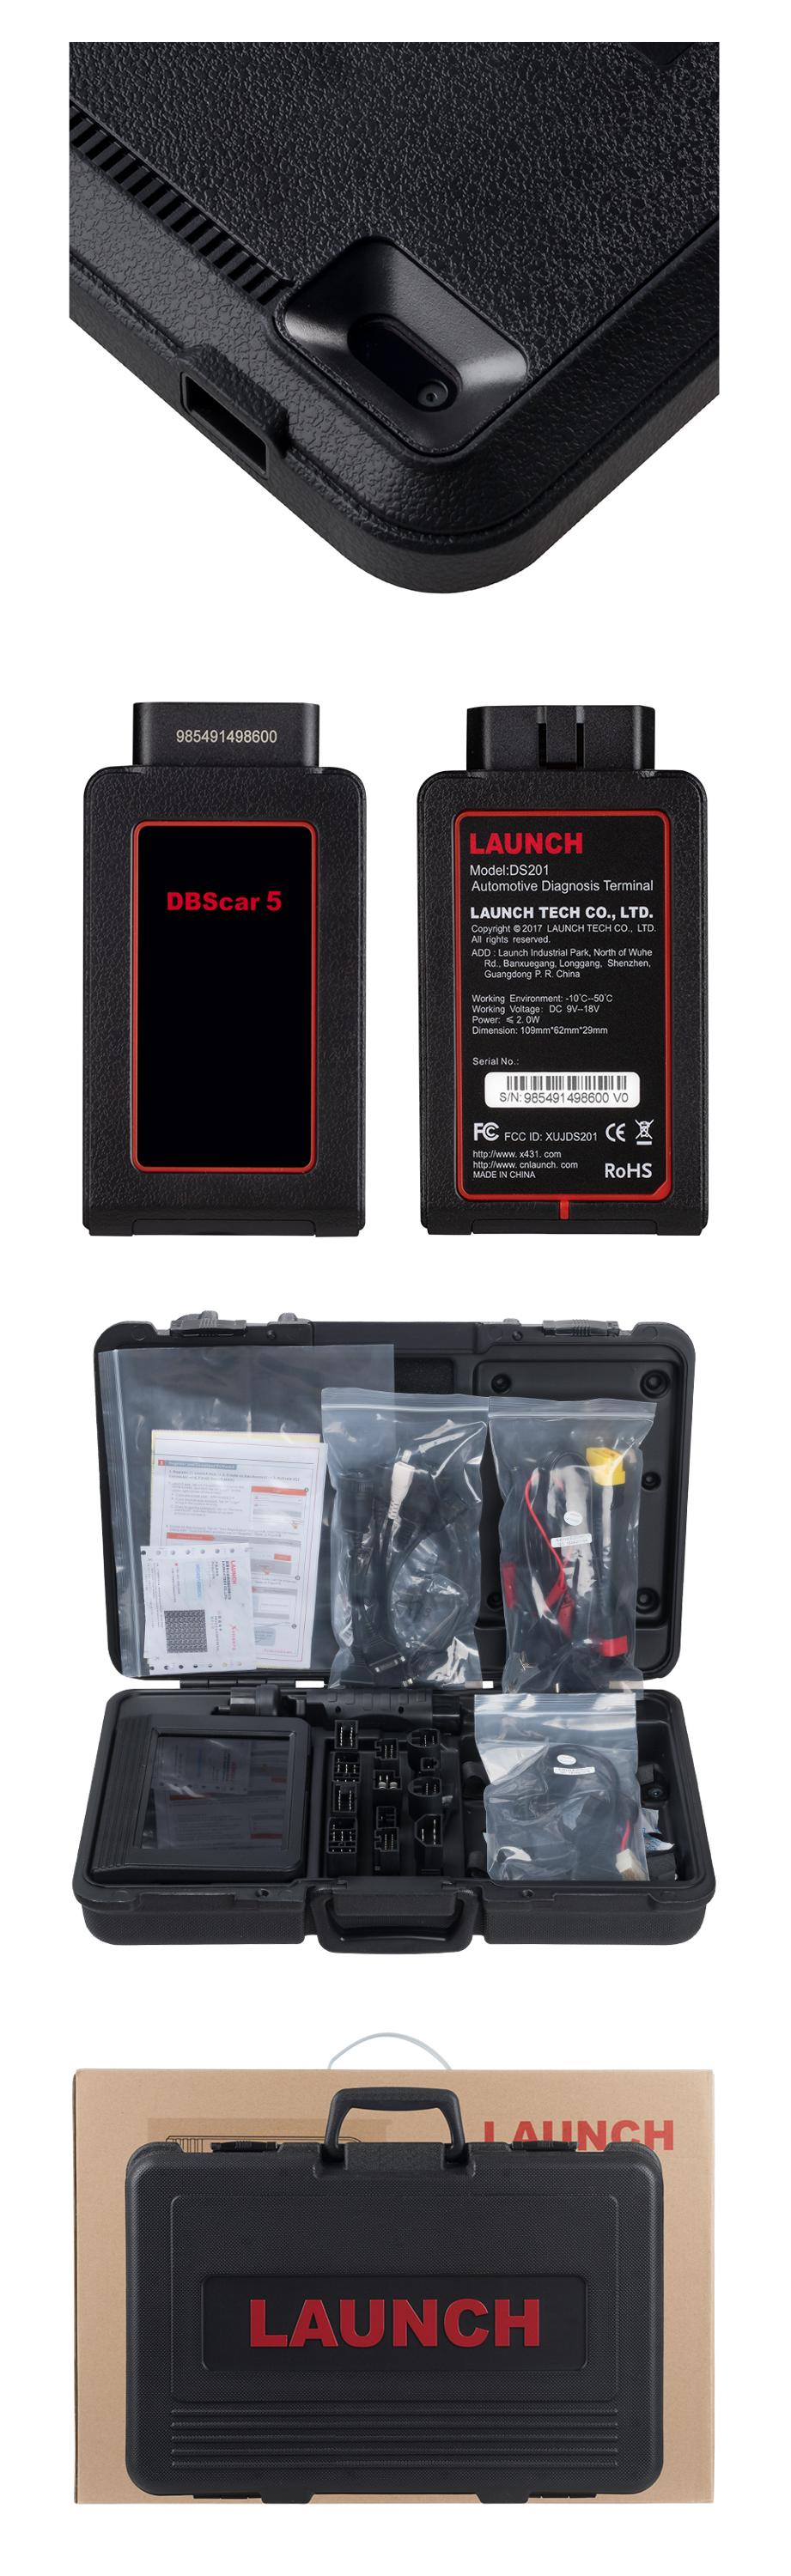 "OBDII Car Scanner Launch X431 V 8"" auto diagnostic tool with full OBD1 OBD2 Scanner X431V 8 inch scanner"